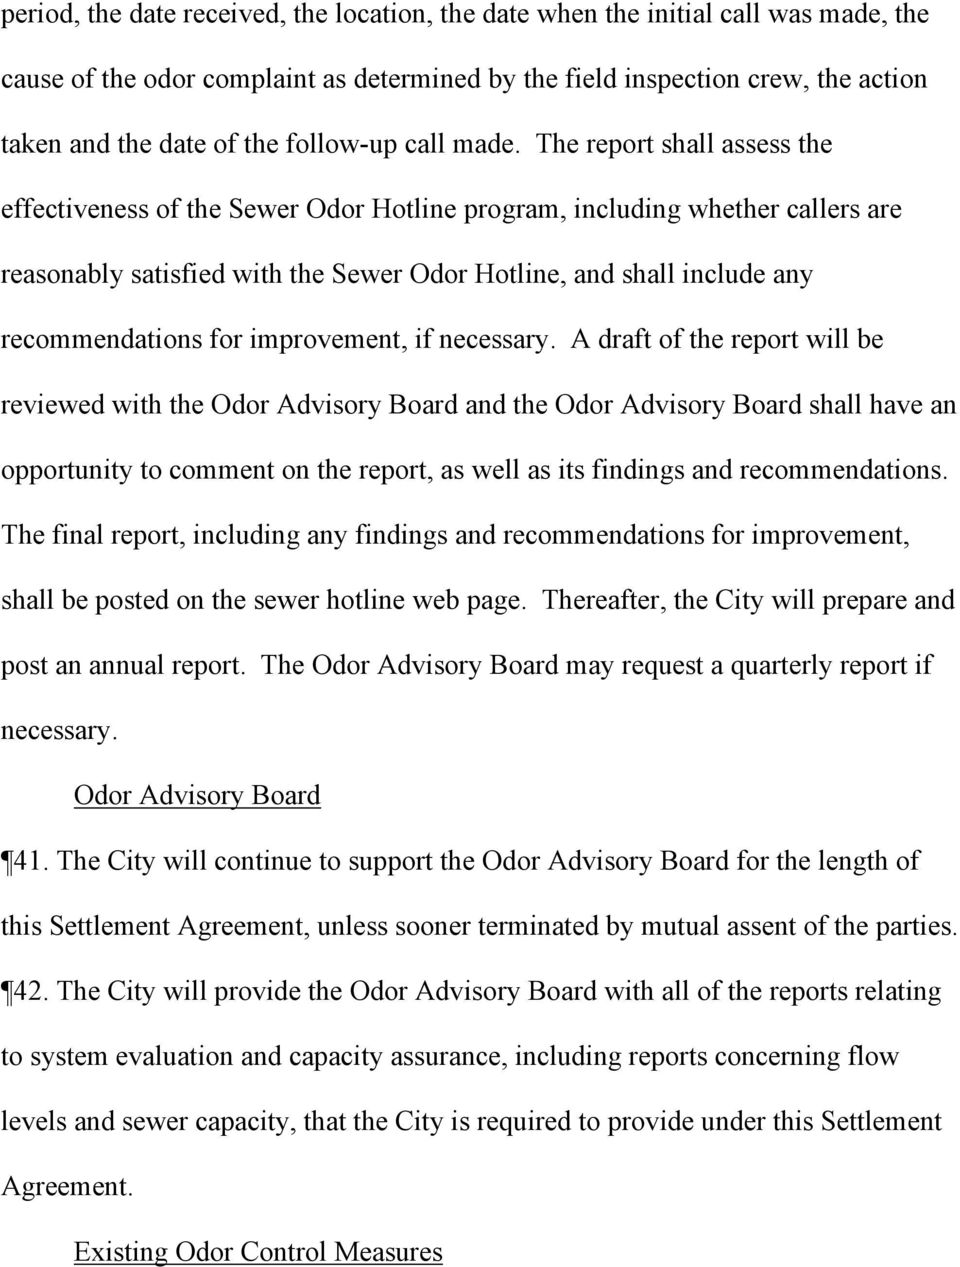 The report shall assess the effectiveness of the Sewer Odor Hotline program, including whether callers are reasonably satisfied with the Sewer Odor Hotline, and shall include any recommendations for